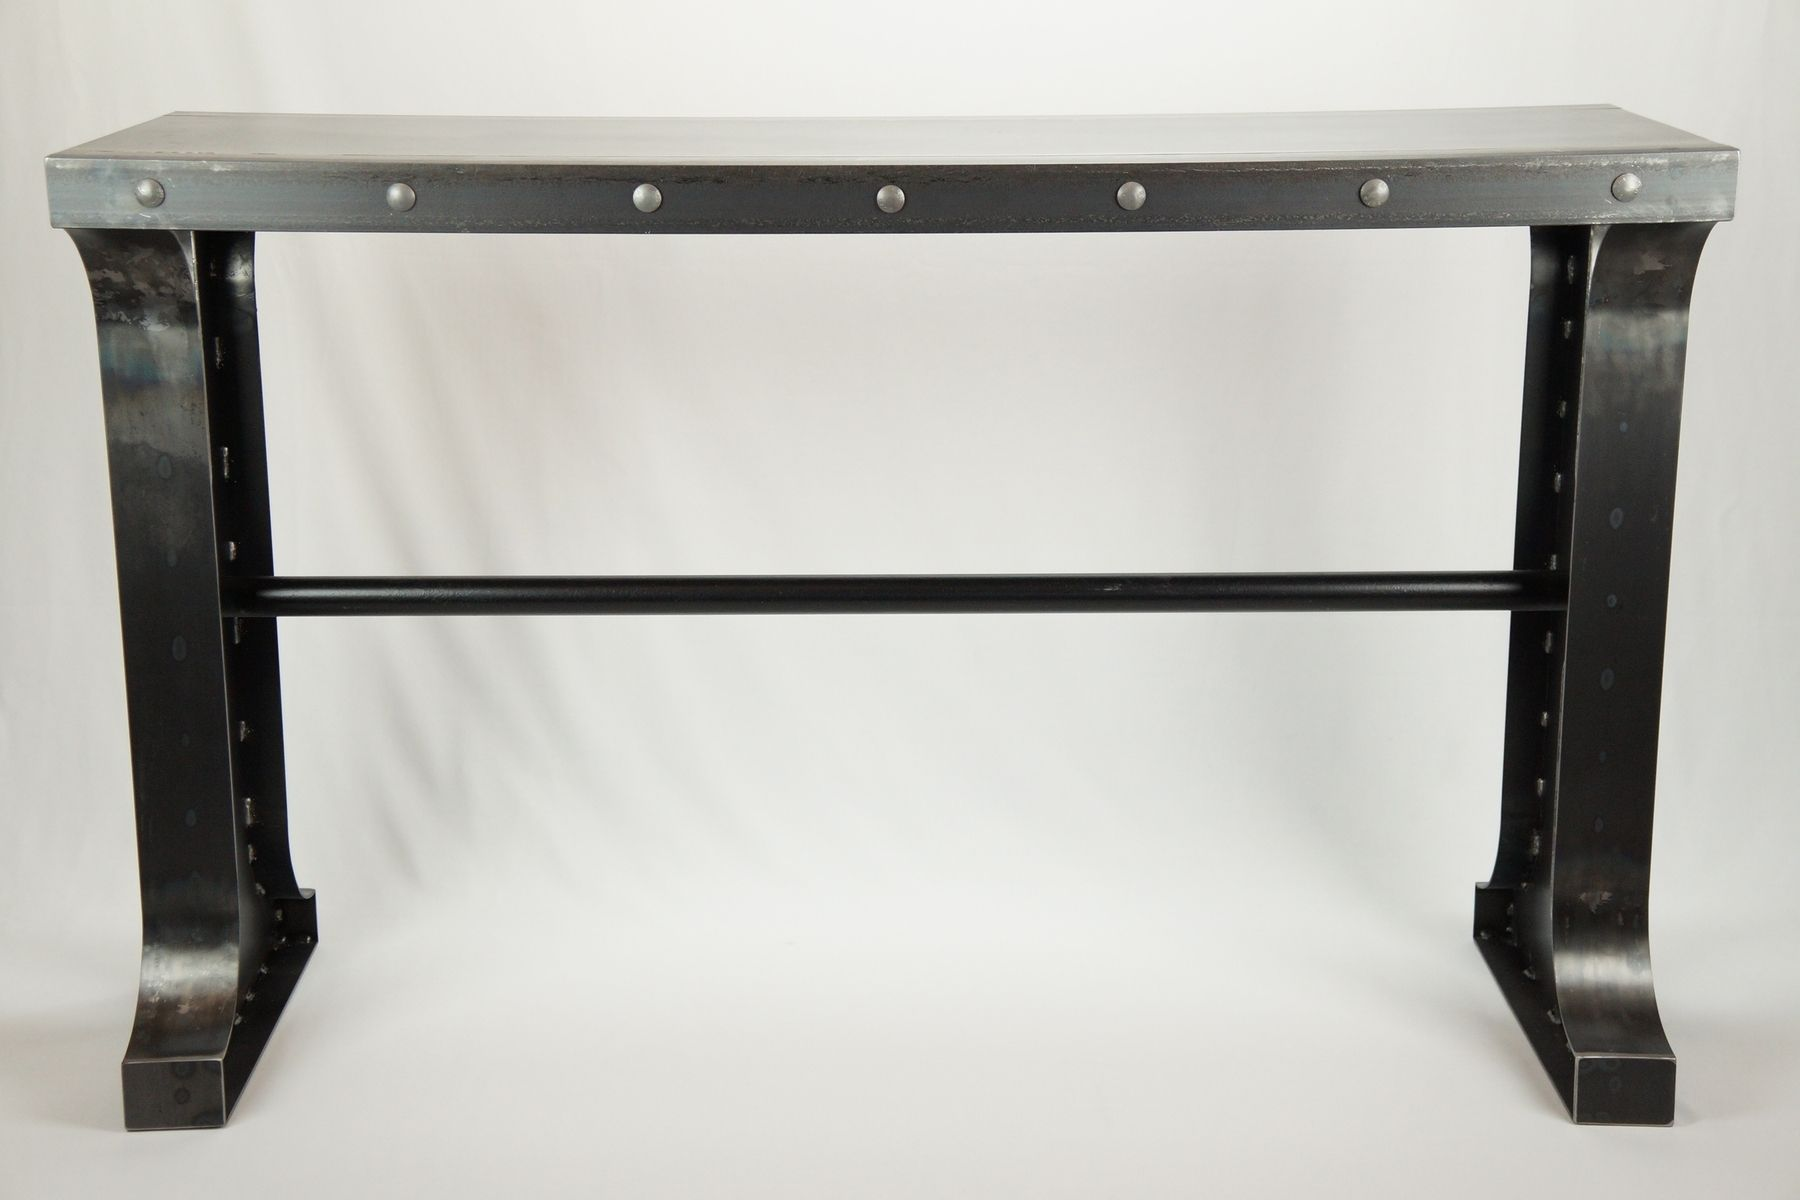 custom made sofa tables best compact double bed buy a industrial metal console table to